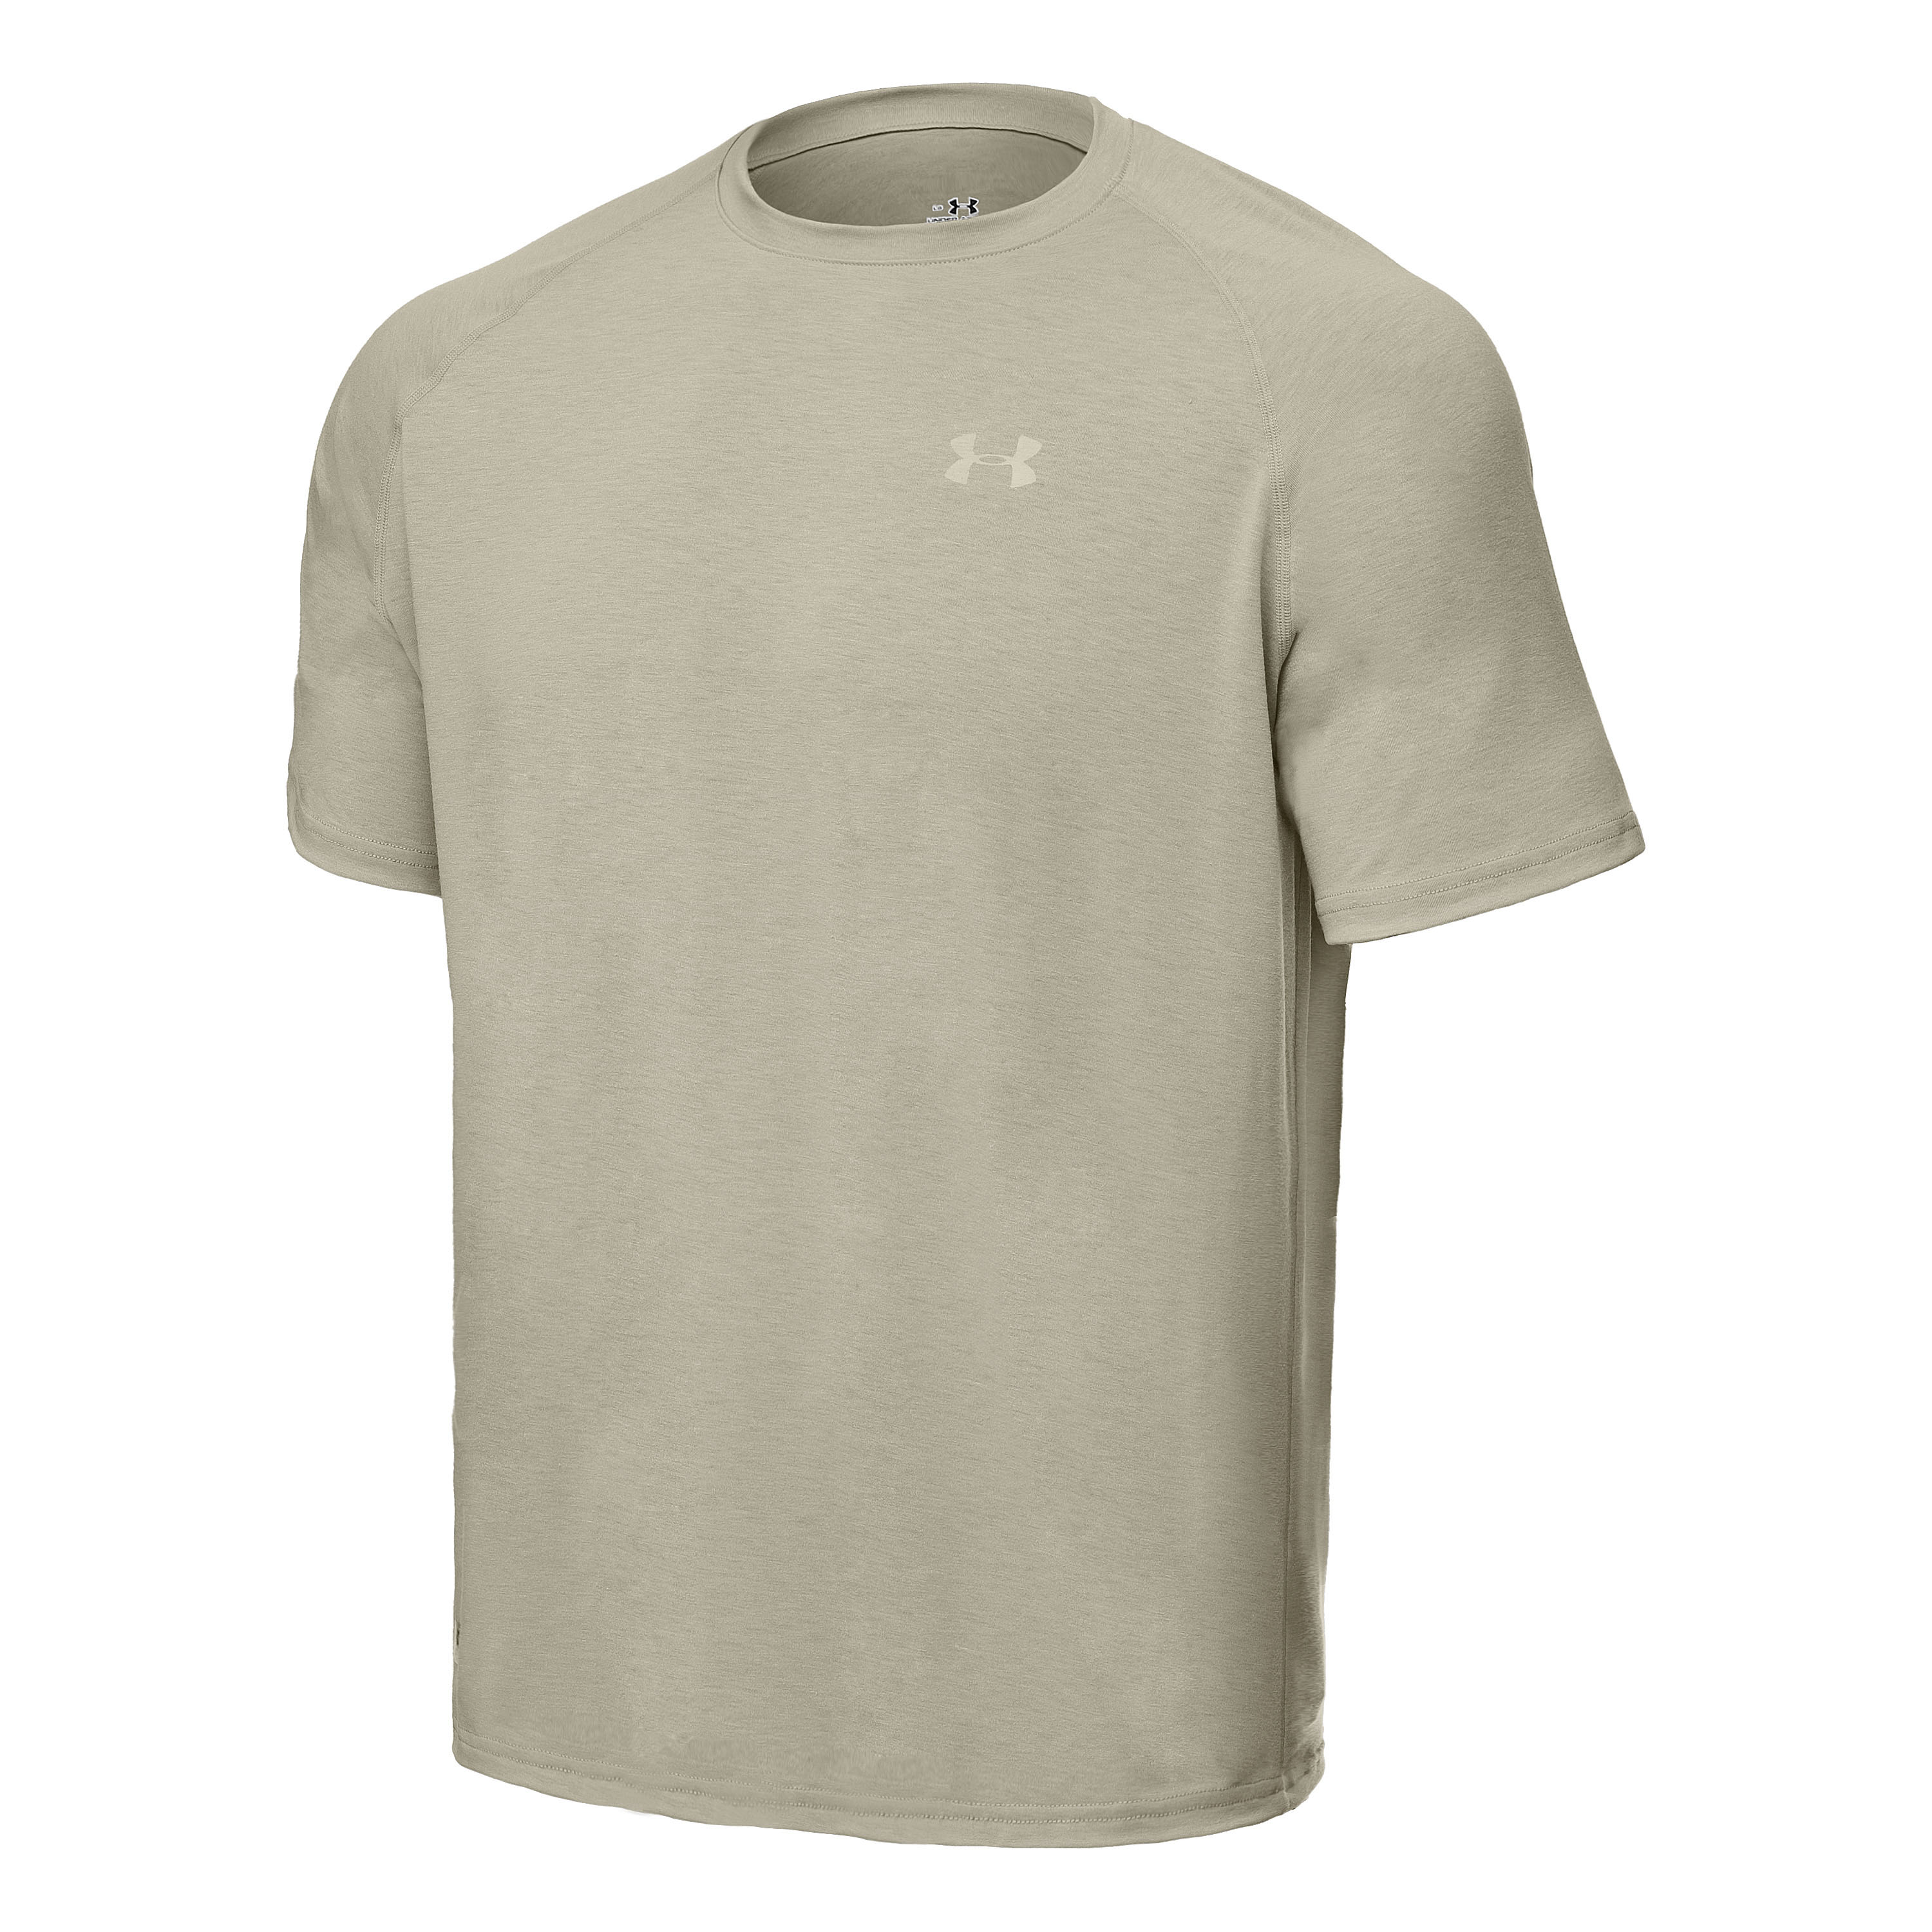 Under Armour Tactical T-Shirt Tech Tee HeatGear desert sand